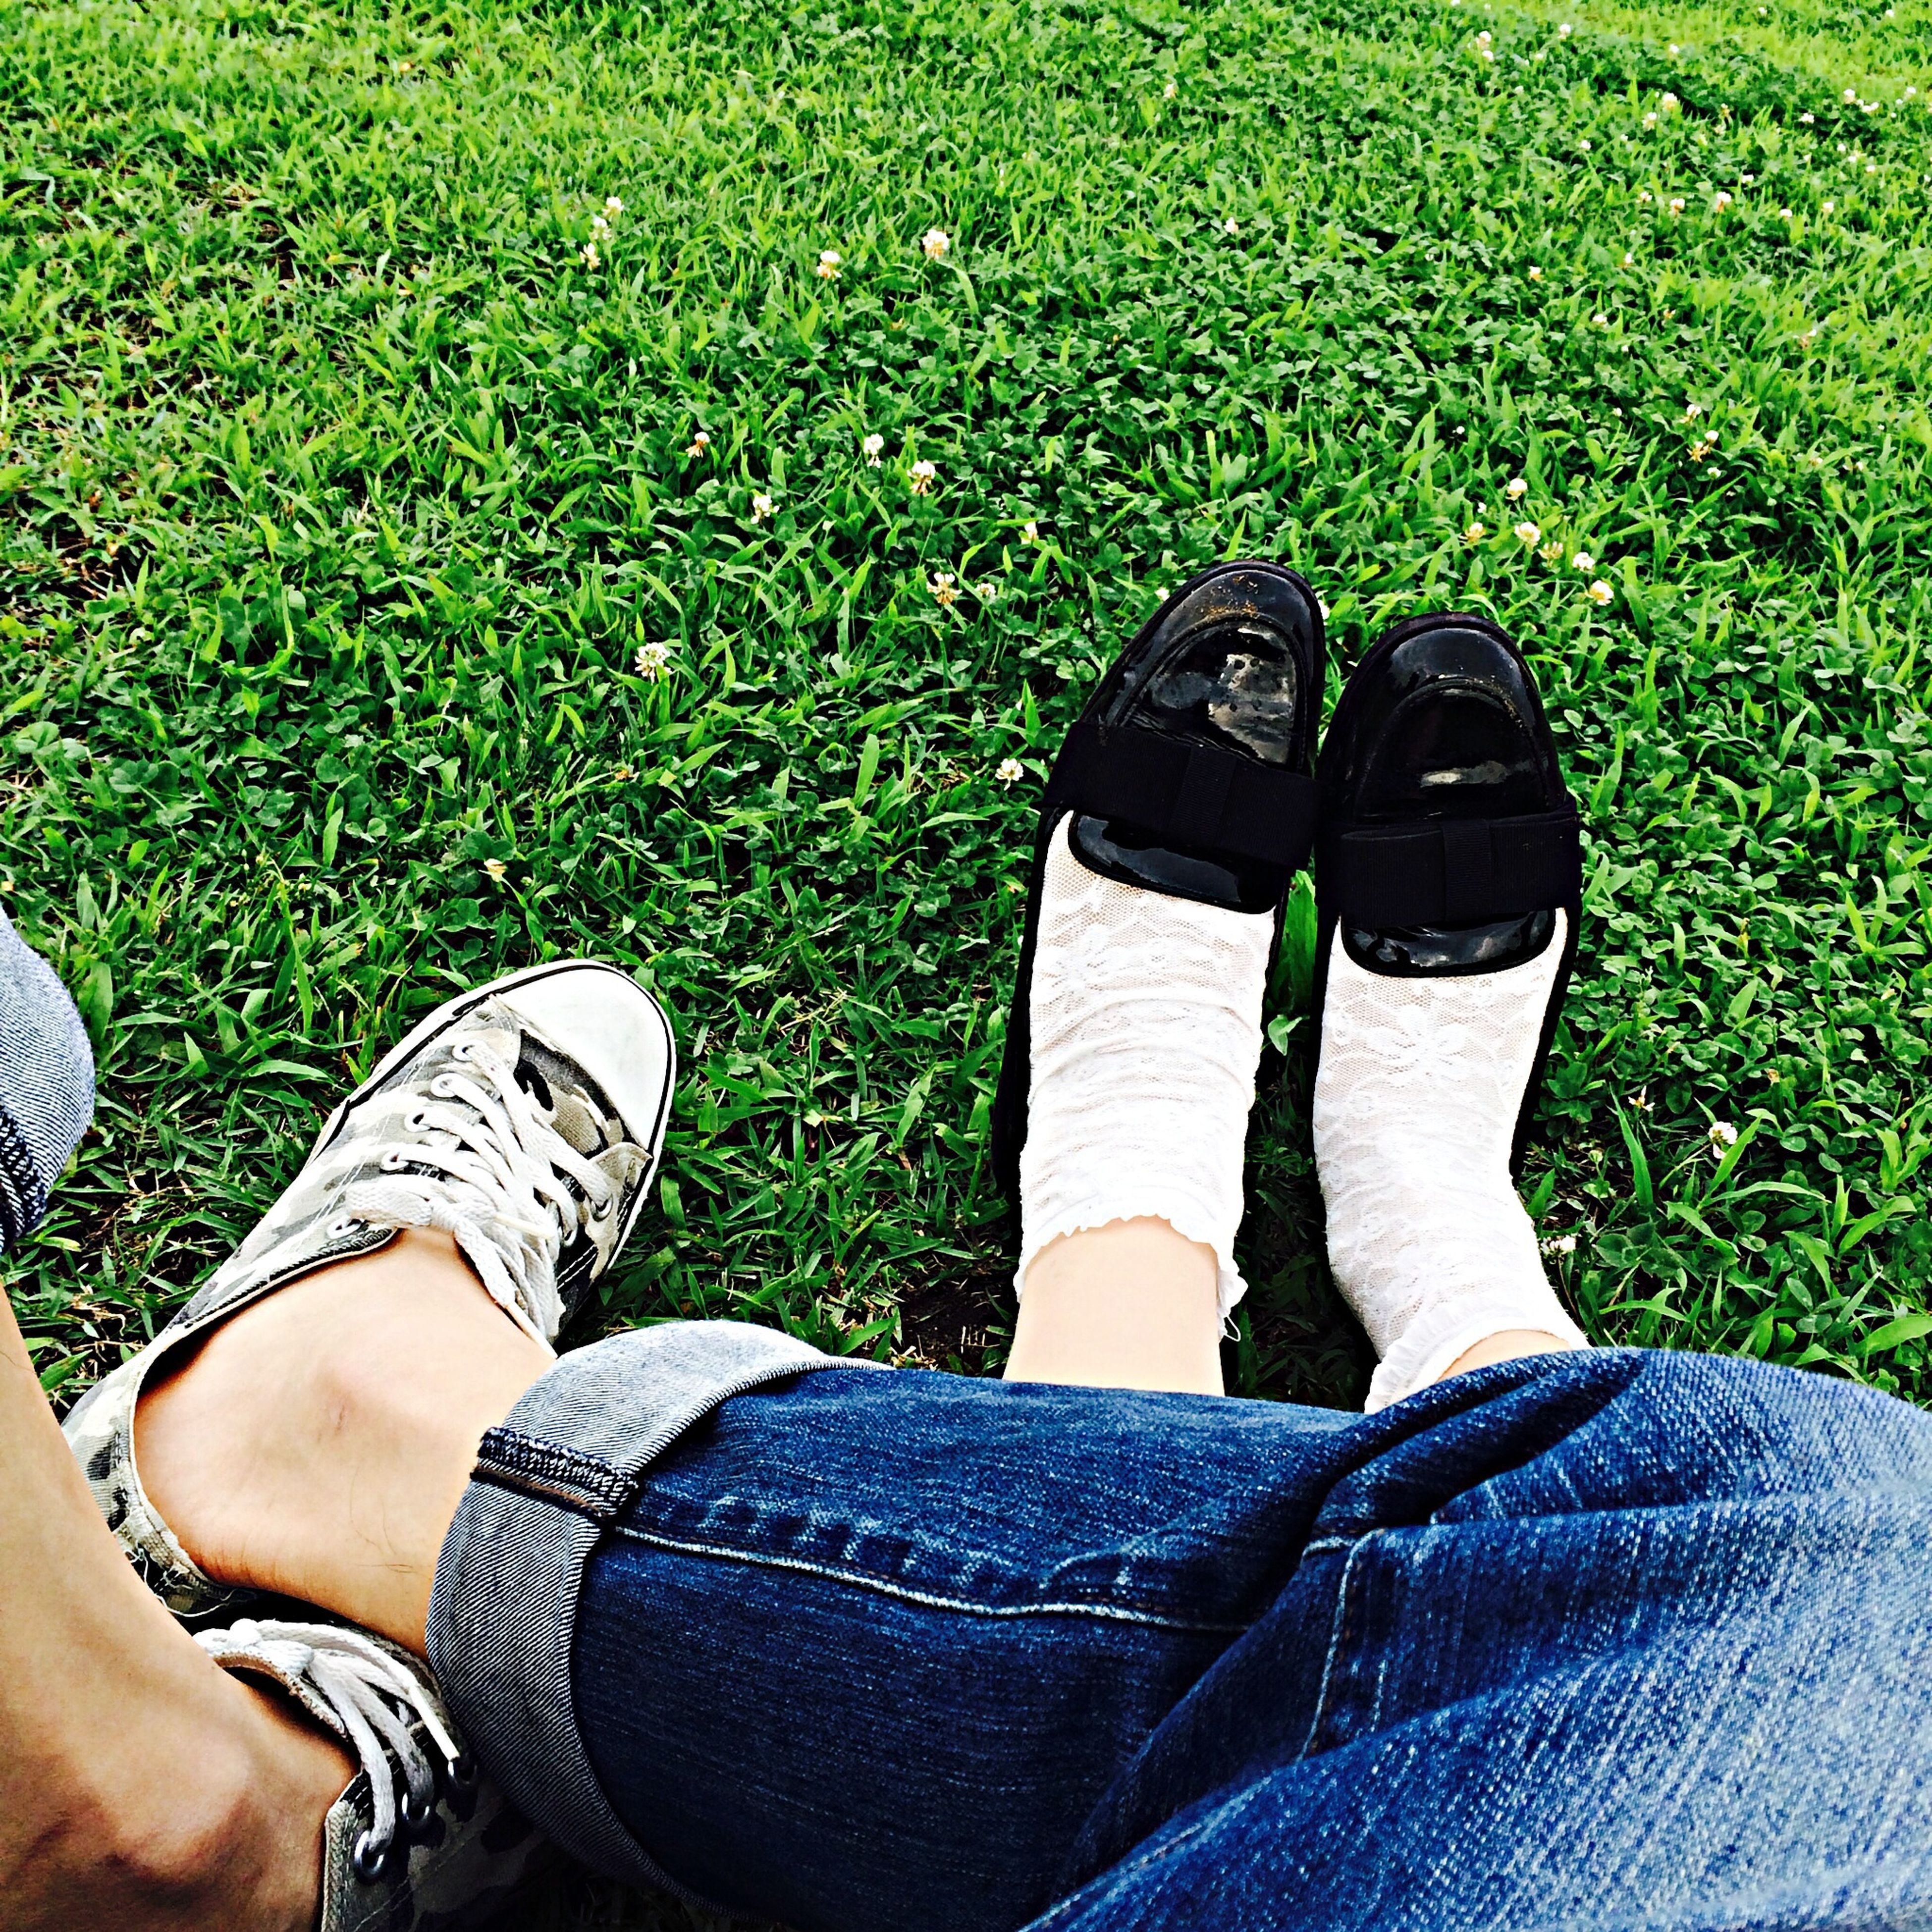 low section, person, shoe, personal perspective, footwear, grass, jeans, lifestyles, human foot, men, leisure activity, field, standing, grassy, high angle view, canvas shoe, sitting